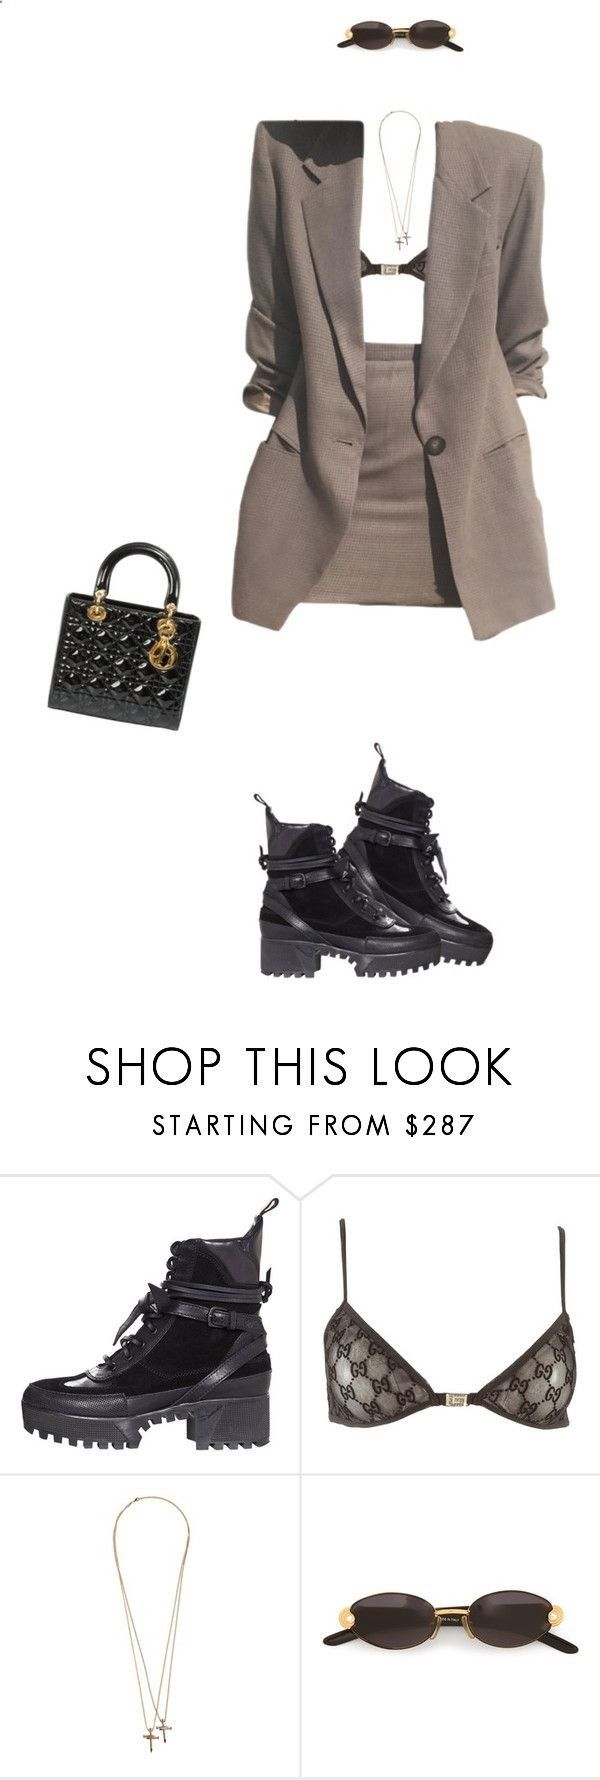 Untitled #110 by stacy4422 ❤ liked on Polyvore featuring Louis Vuitton, Tom Ford, Dsquared2, Gianfranco Ferré and Christian Dior